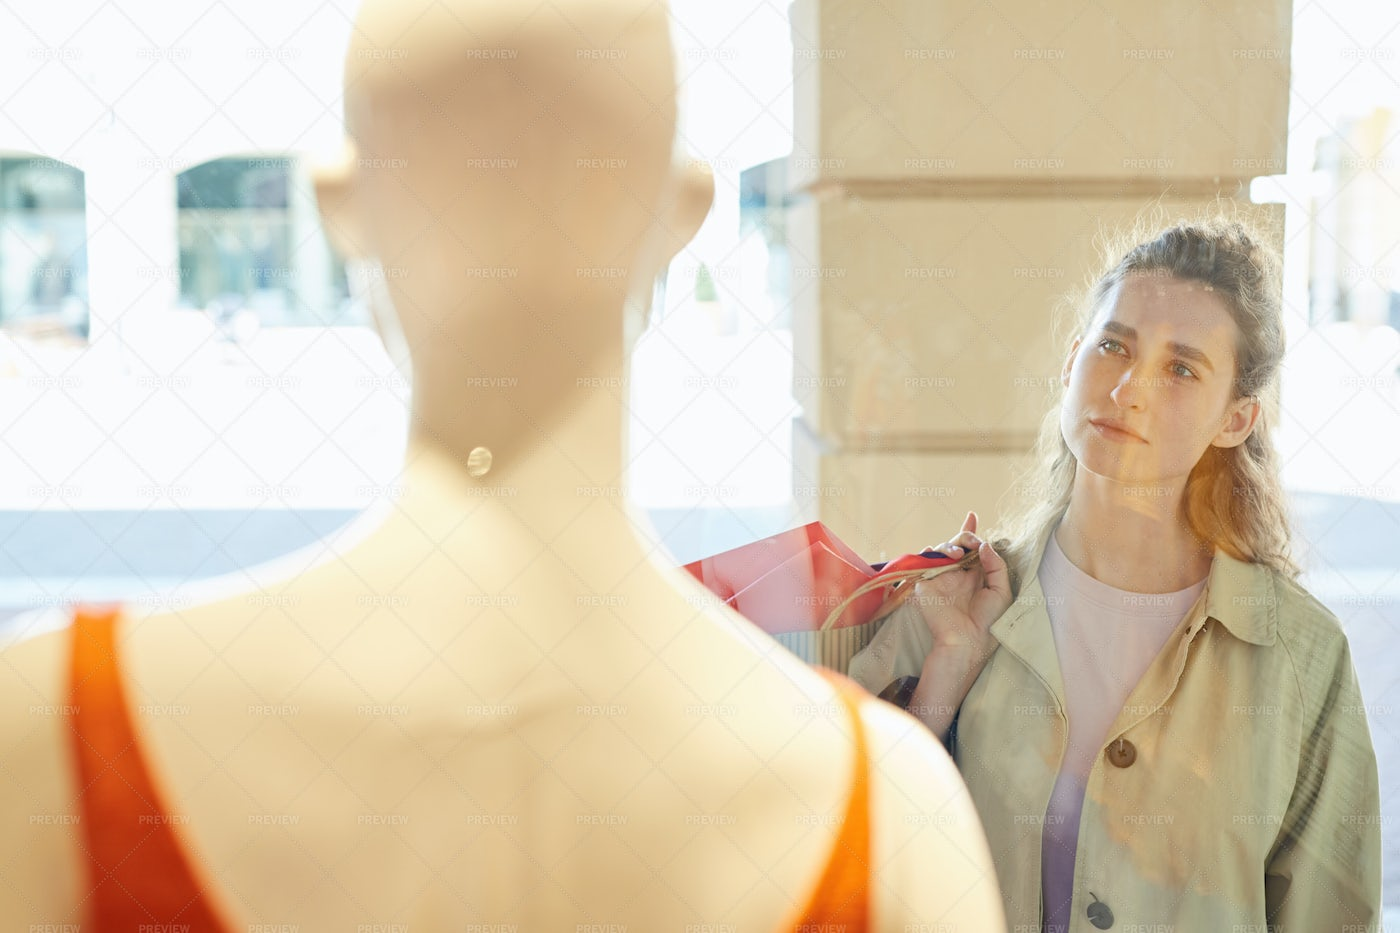 Pensive Girl Viewing Clothing In...: Stock Photos